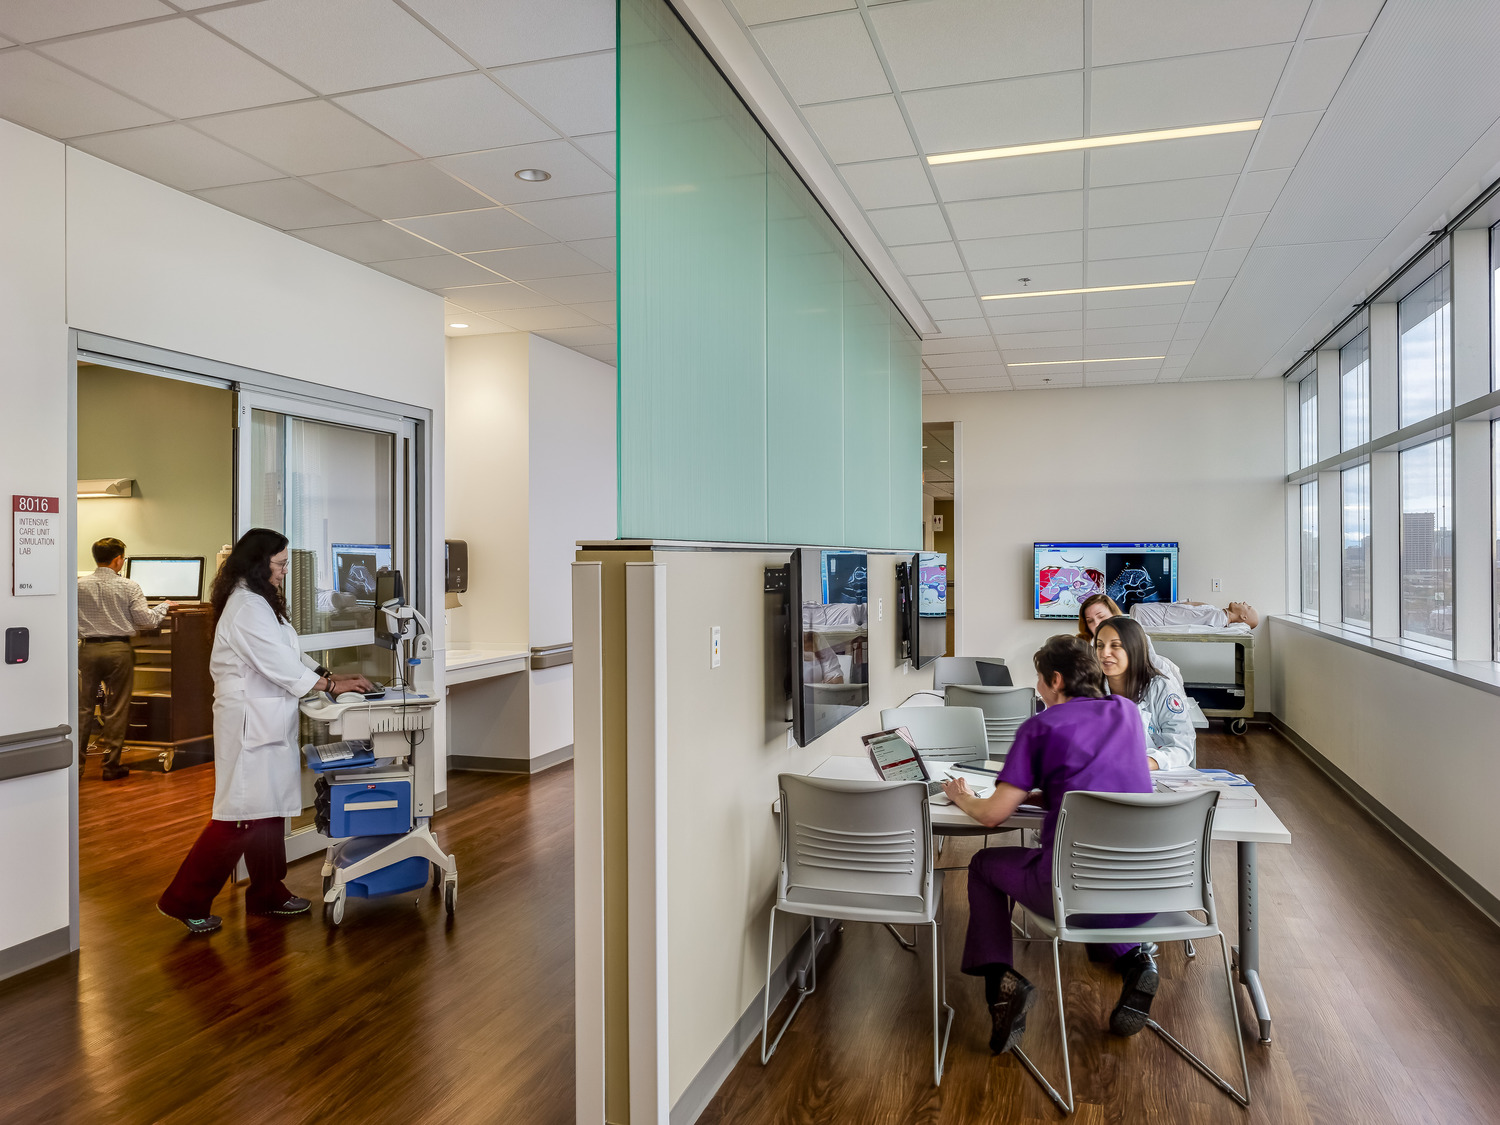 How St. Louis learning institutions can leverage new tech like simulation and holographs to educate the next generation of health professionals.